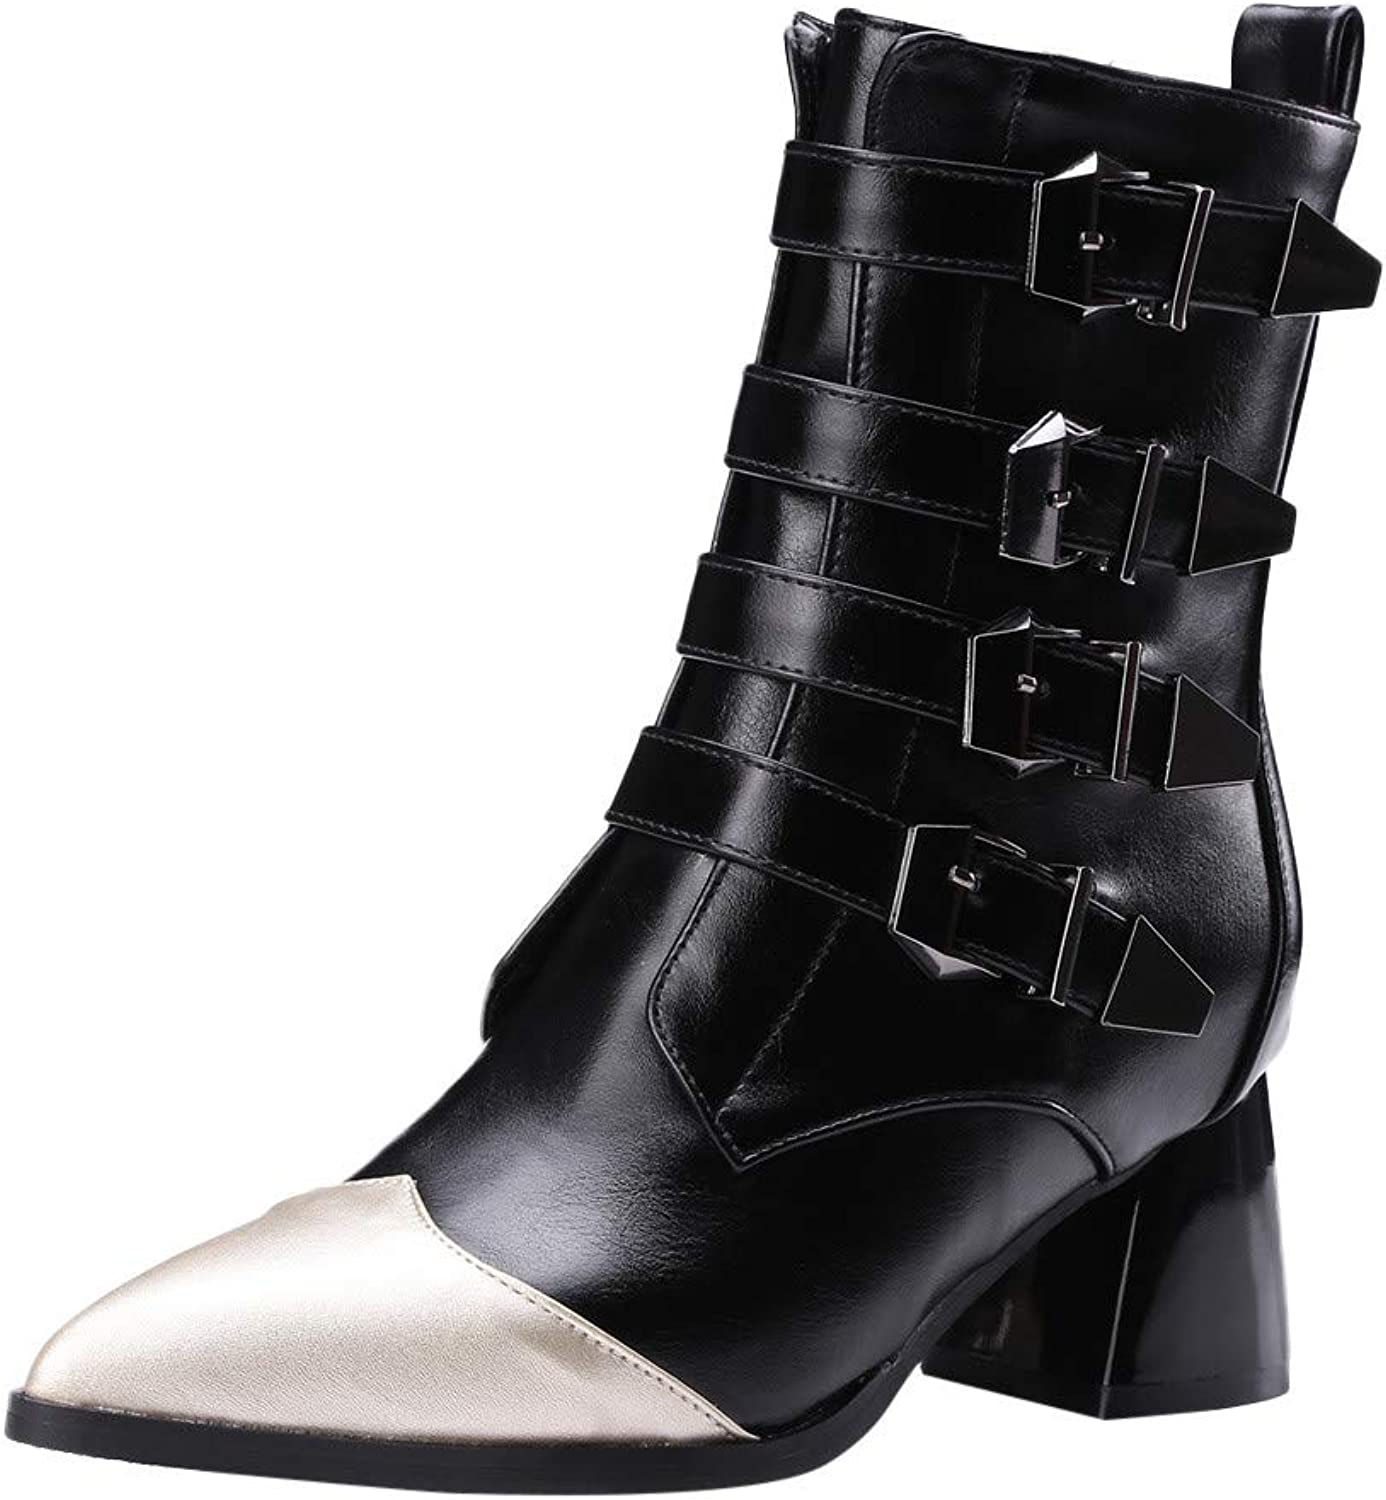 RedBrowm-women Fashion Leather Belt Buckle Thick Heel shoes Pointed-Toe Martin Boots Black